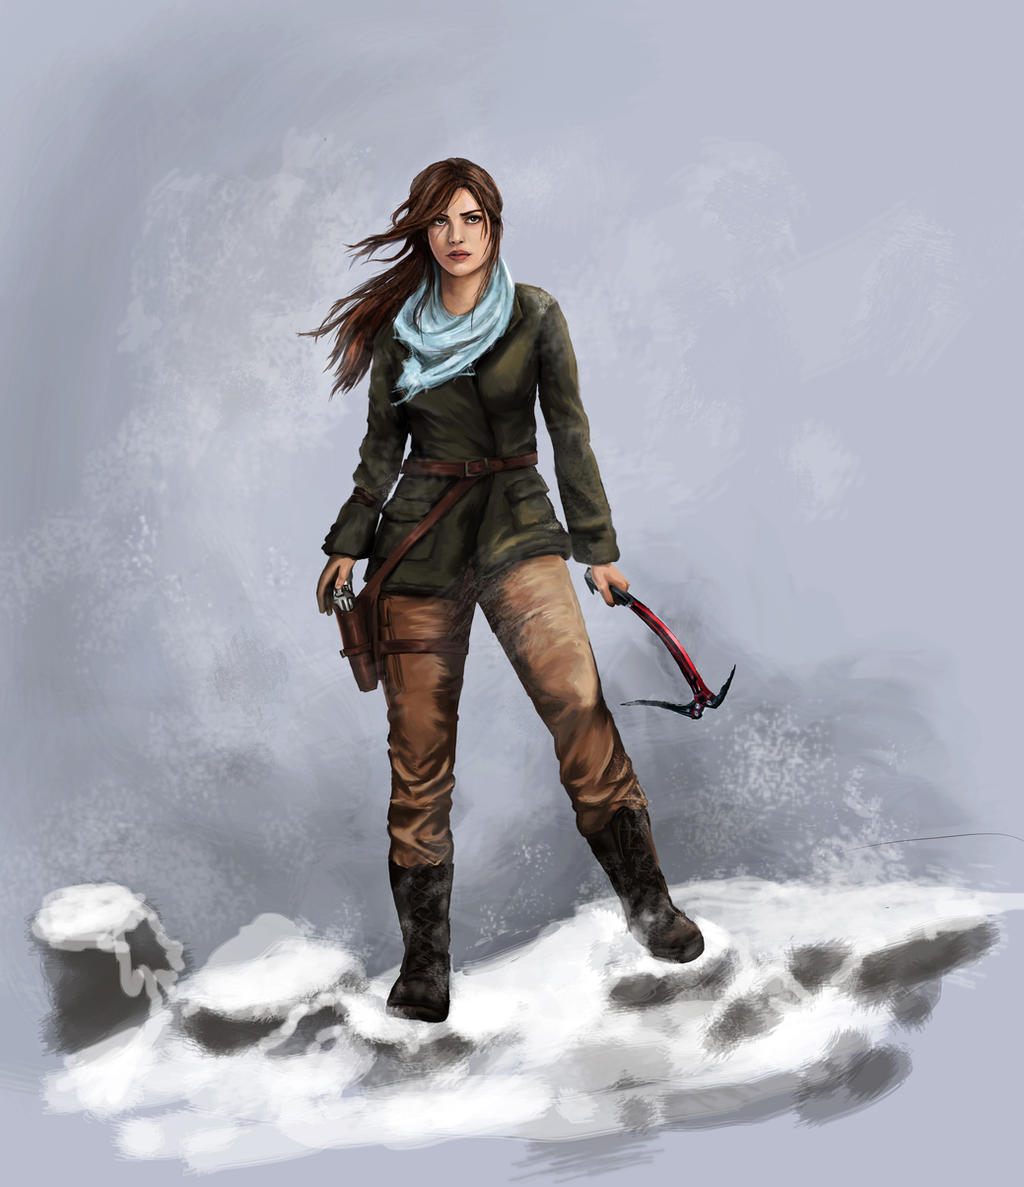 Tomb Rider Wallpaper: Rise Of The Tomb Raider By Pencilsketches On DeviantArt